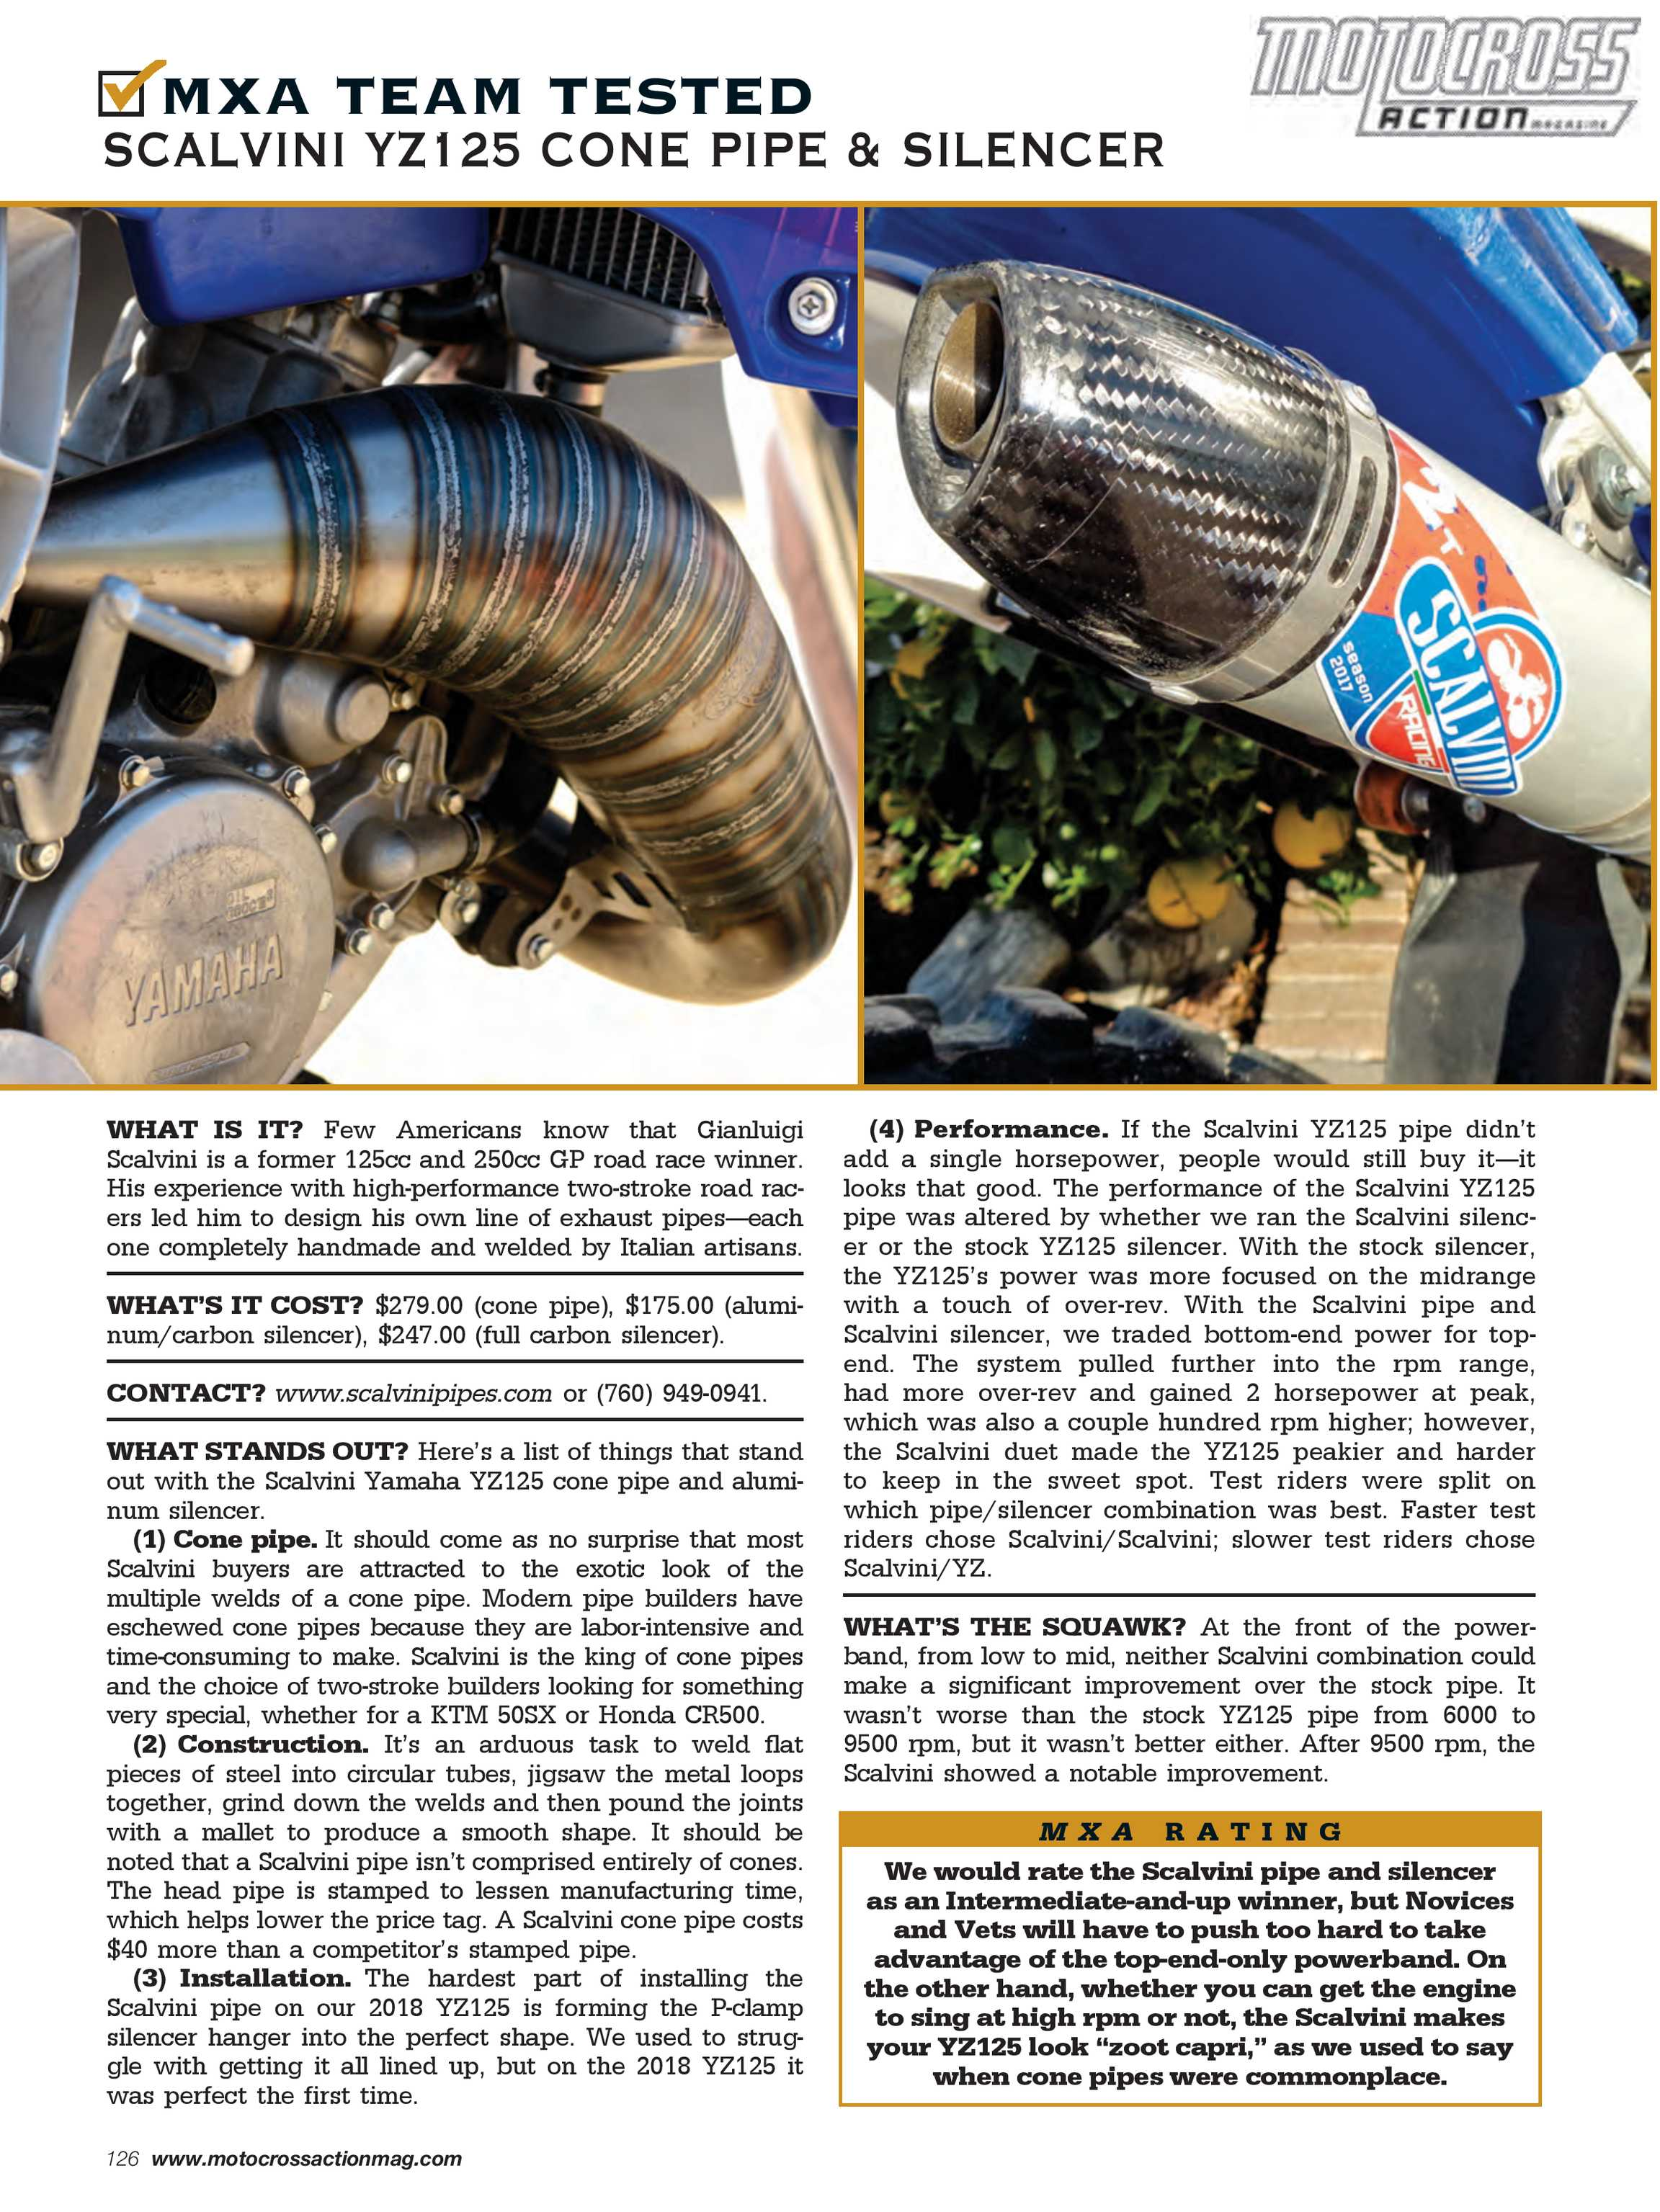 Motocross Action Magazine - May 2018 - page 126